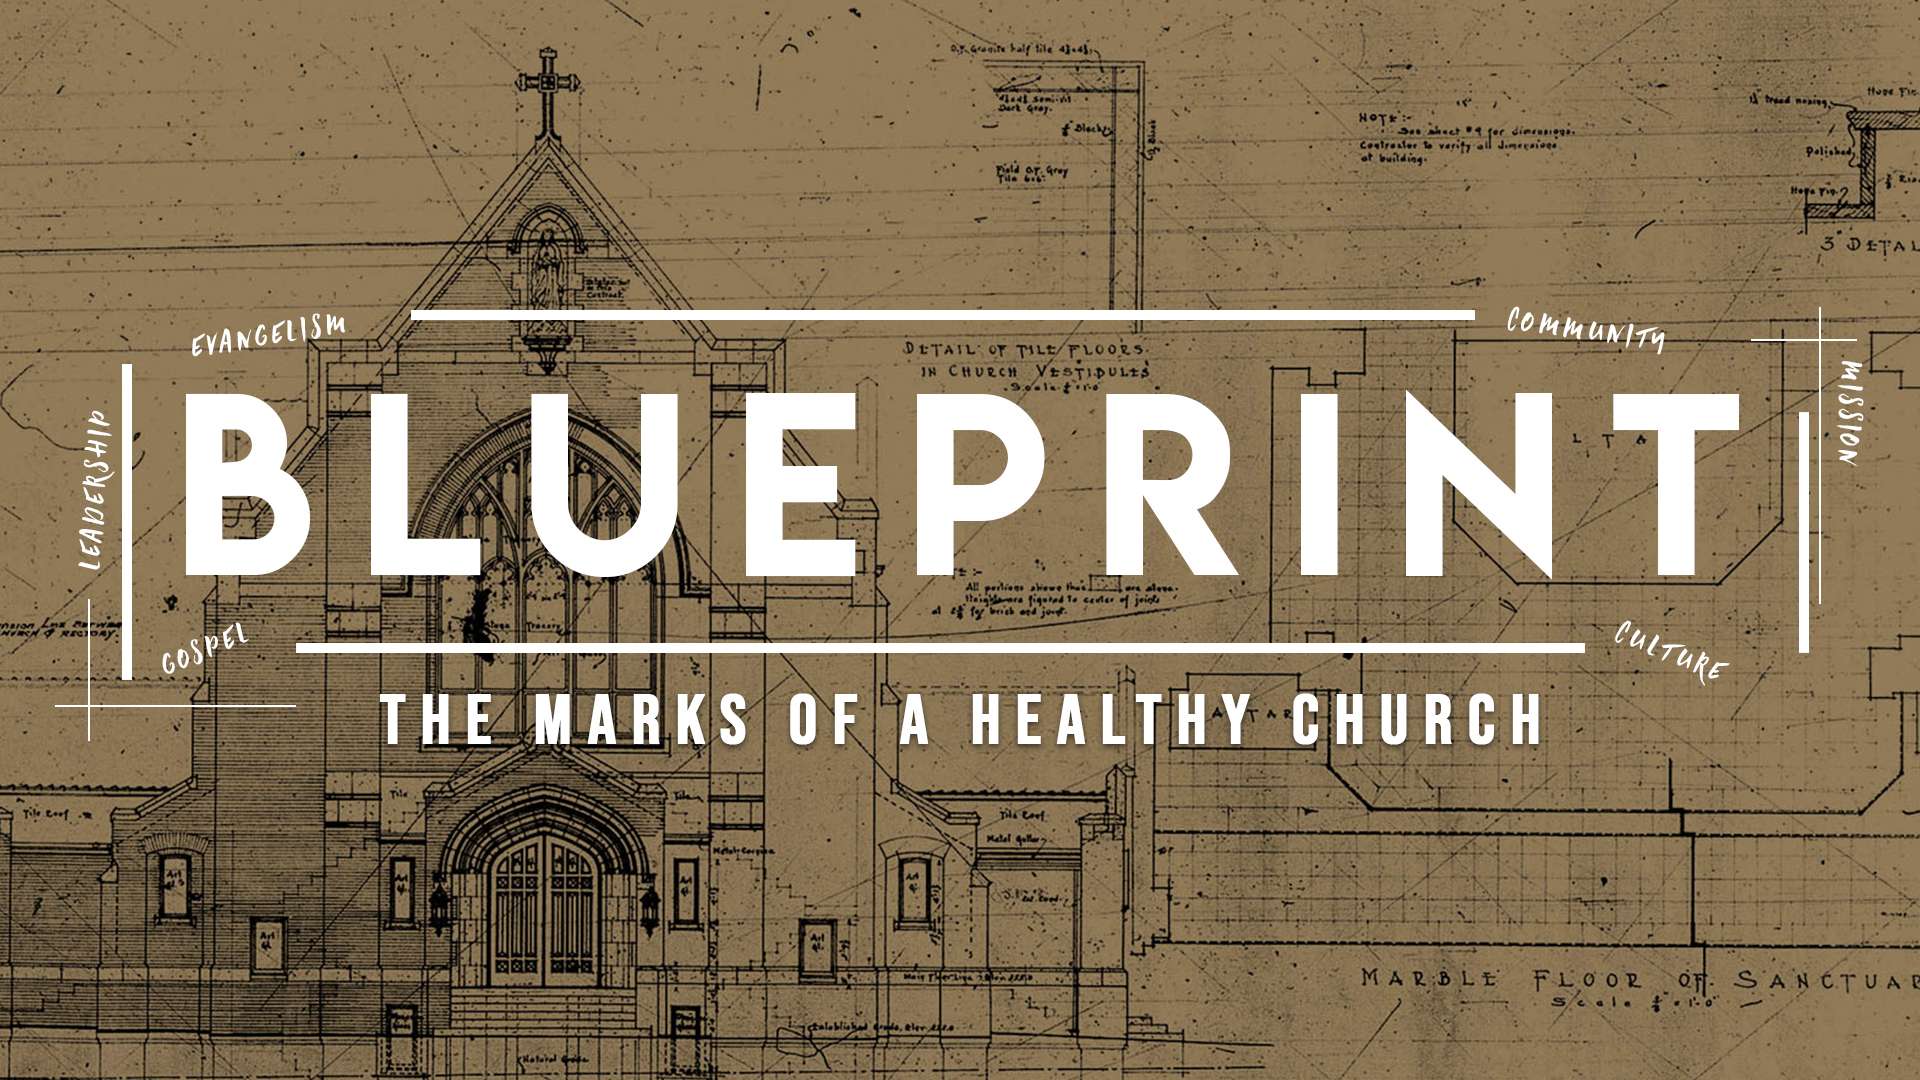 Blueprint - What are the marks of a healthy church? What makes a church successful? Join us as we examine the biblical mission and vision for Jesus' church.